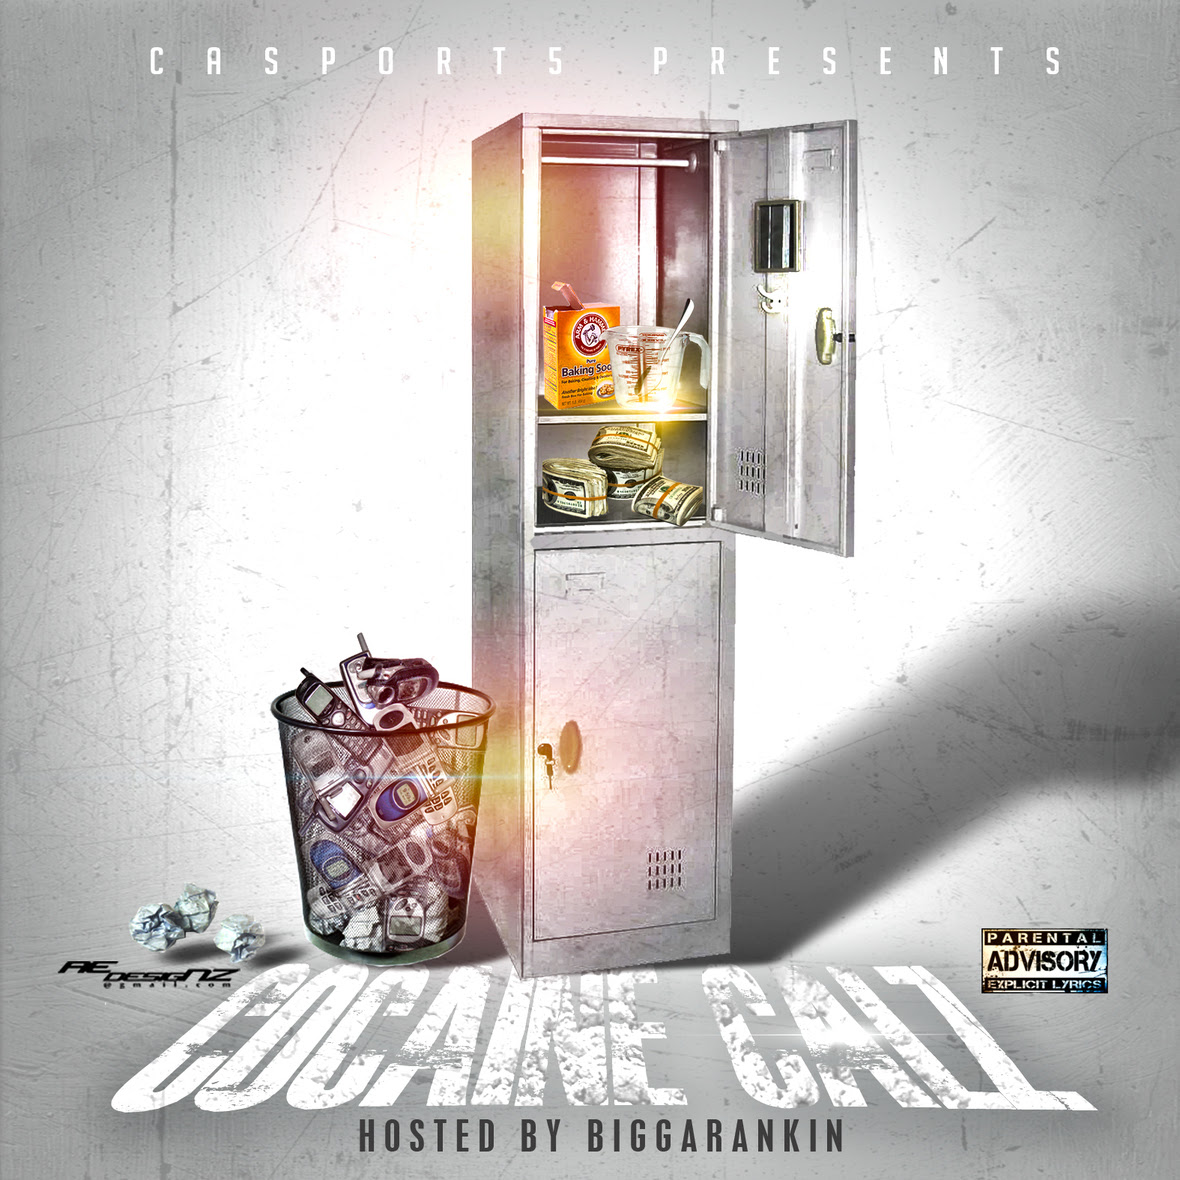 Calz - Cocaine Calz Front Cover